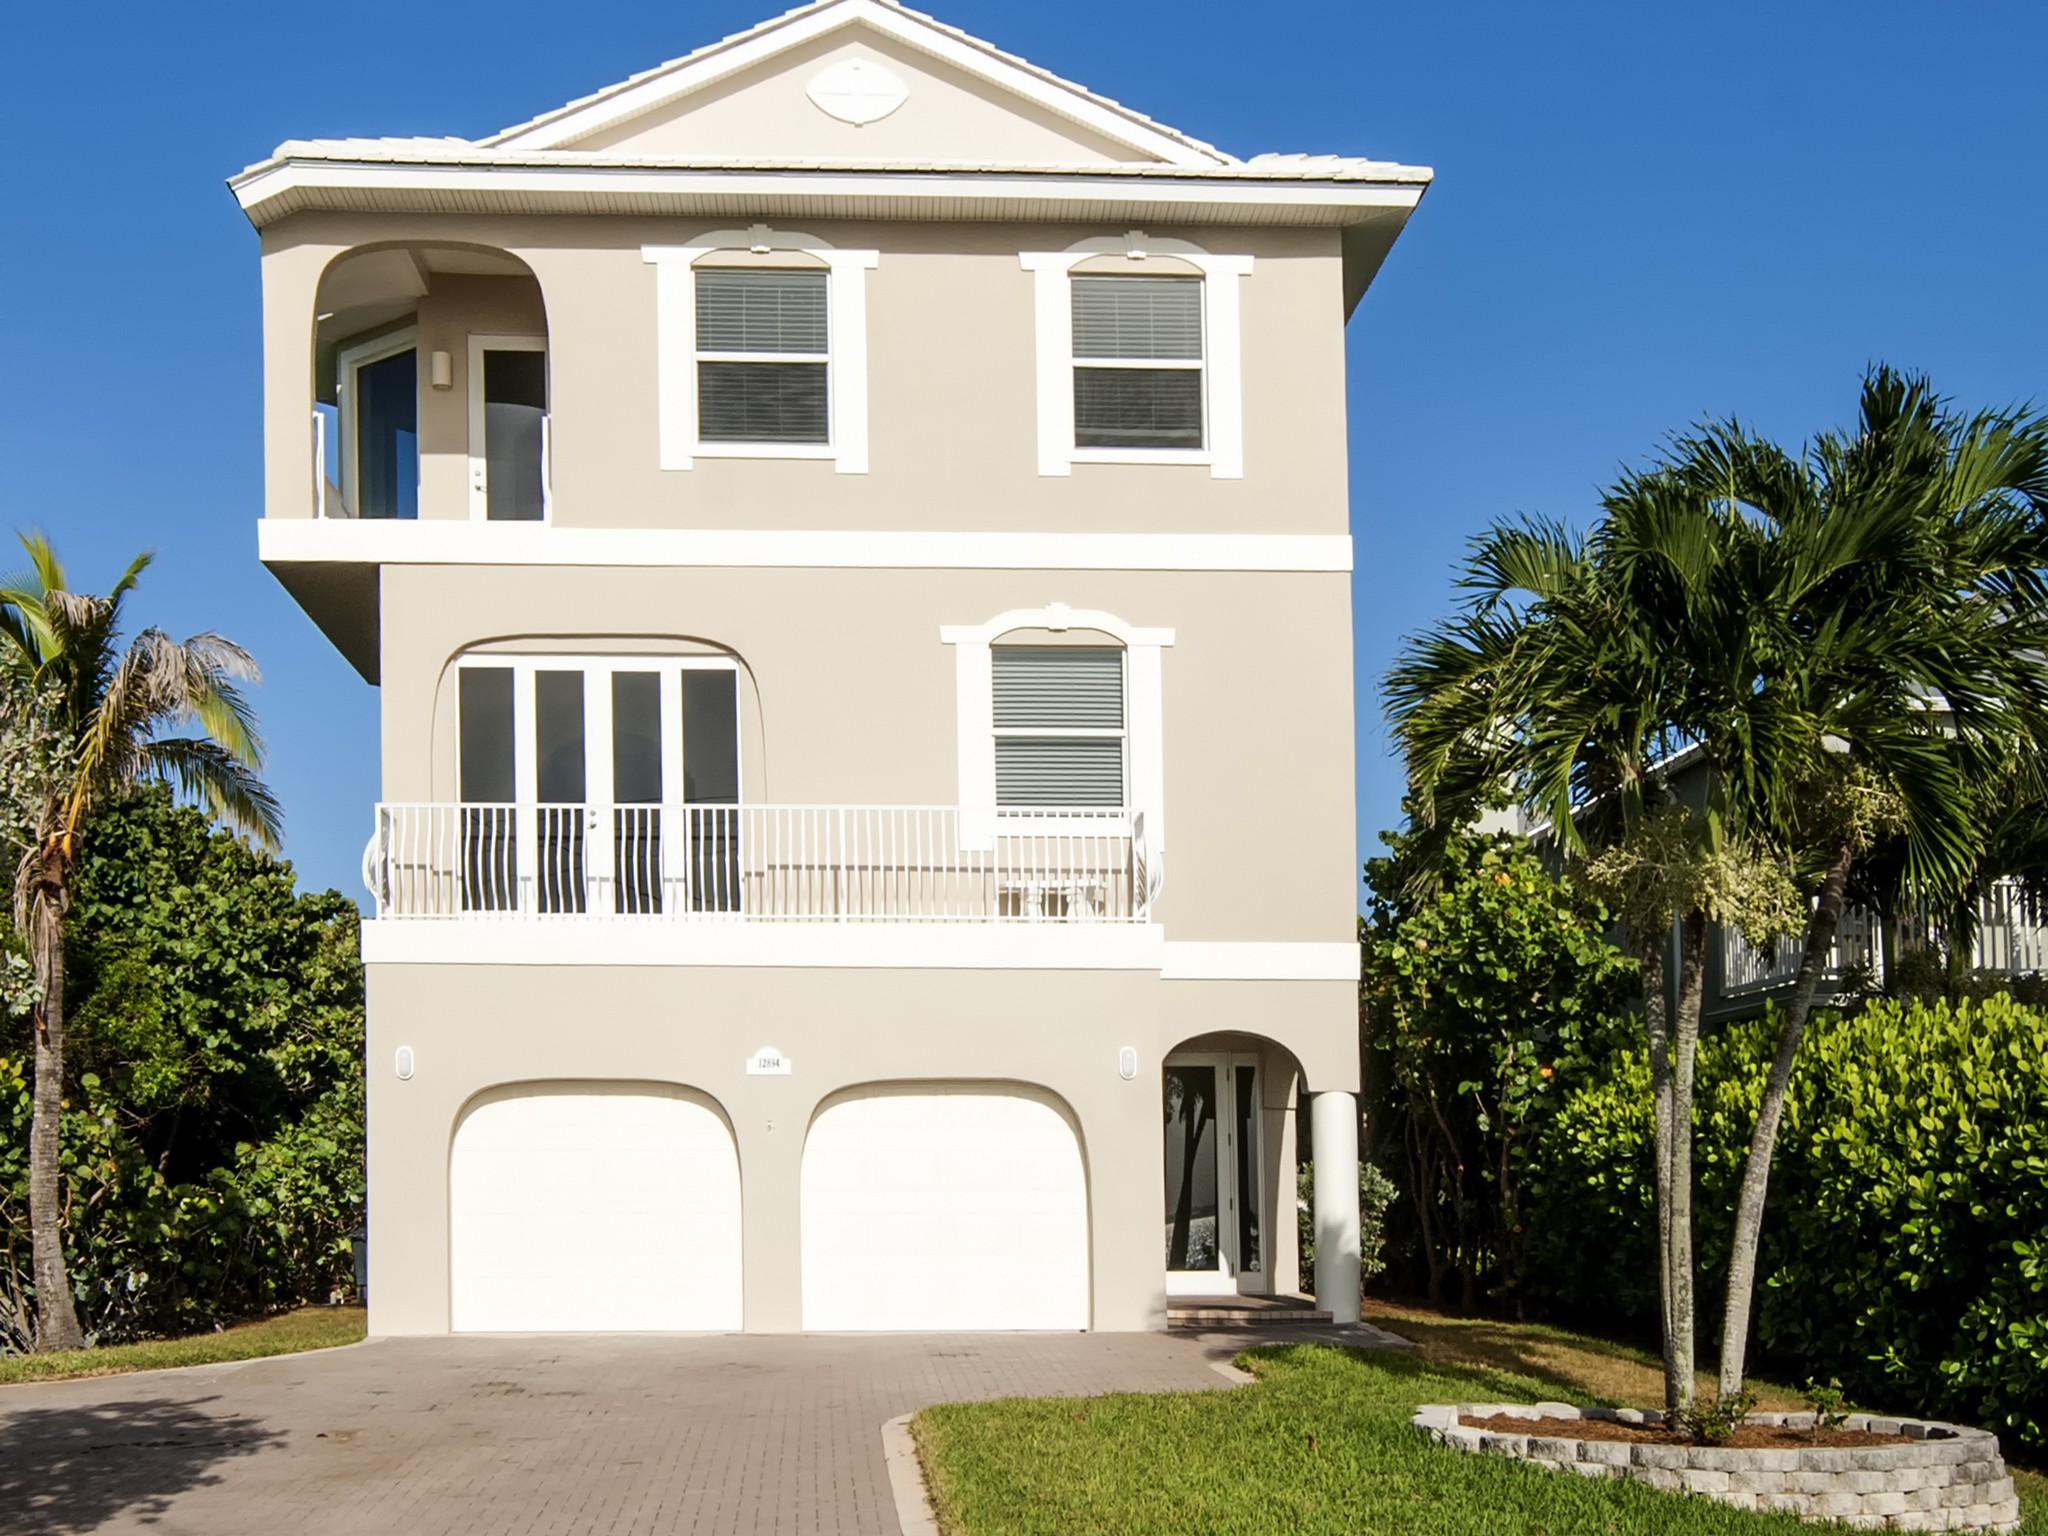 独户住宅 为 销售 在 Beautiful Ocean to River Home in Ambersand Beach 12894 Highway A1A Vero Beach, 佛罗里达州 32963 美国